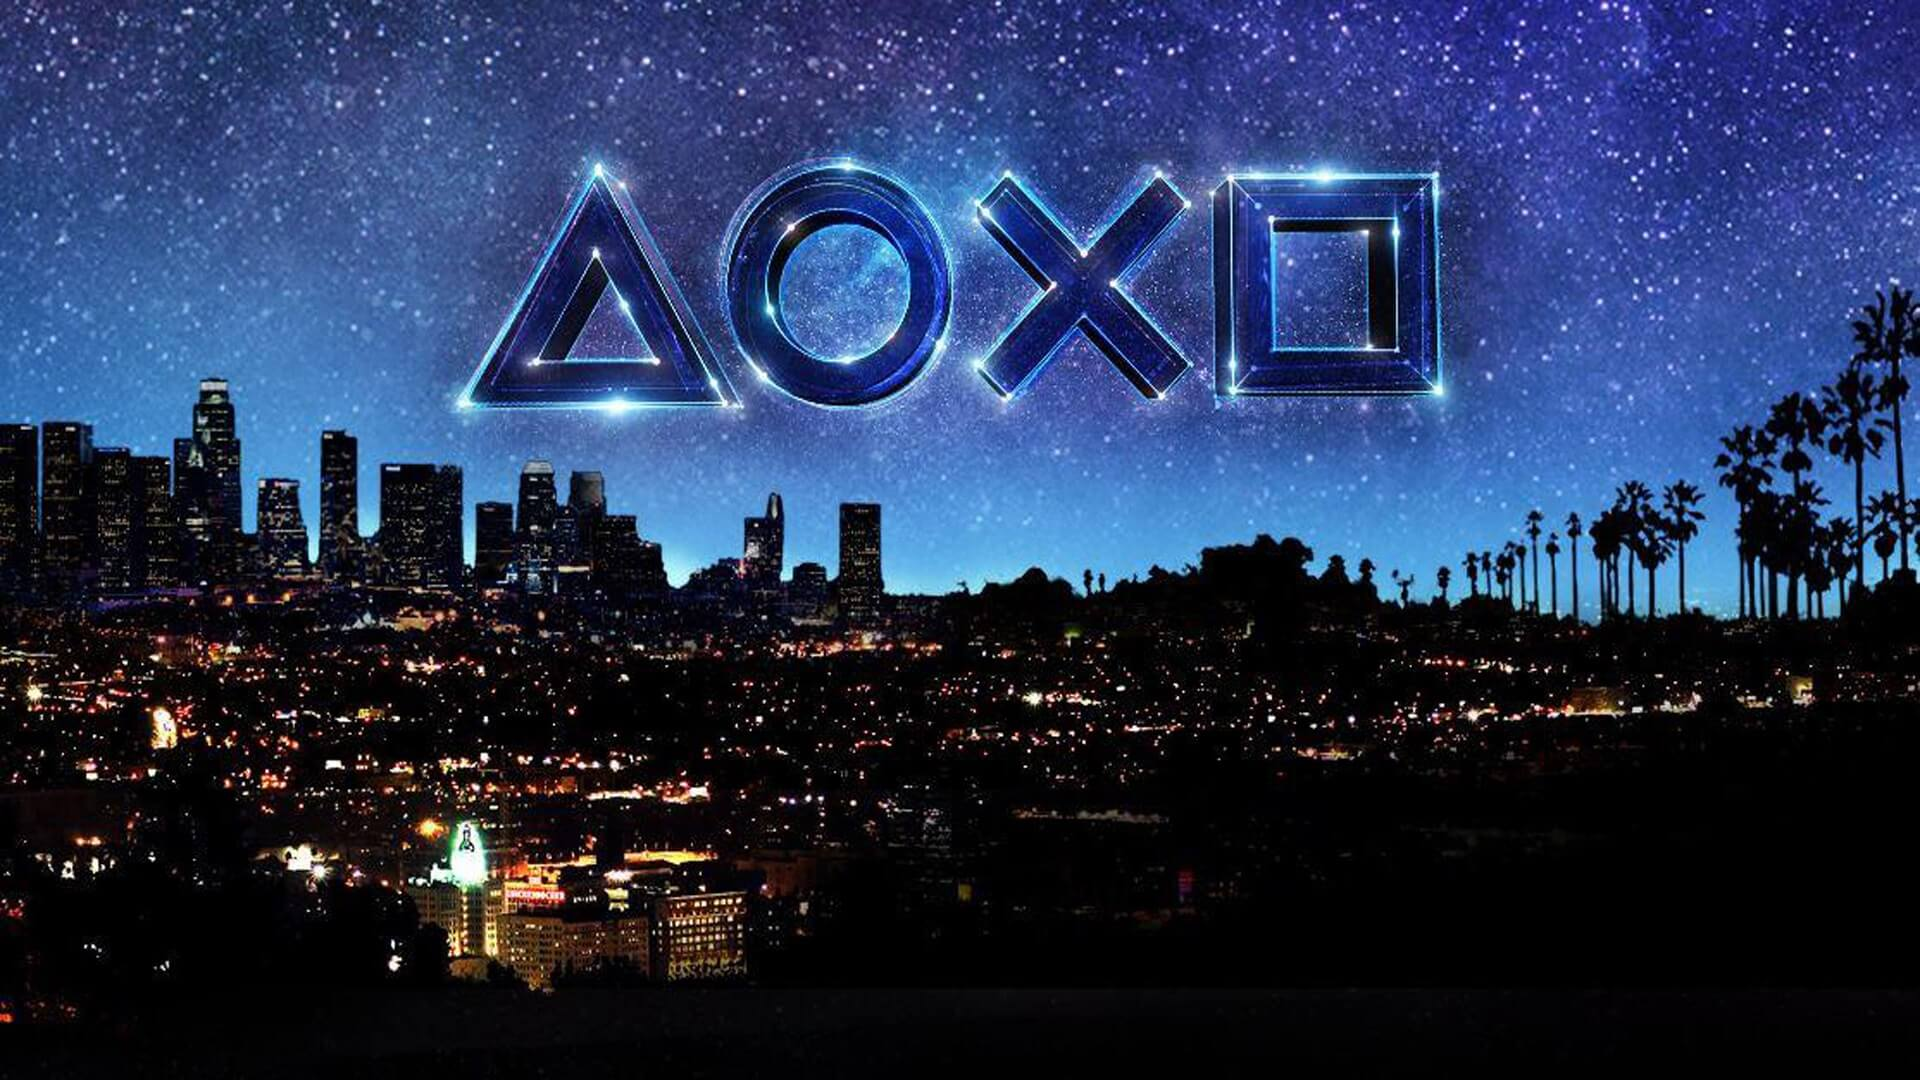 Sony E3 2018: When, Where, and What to Watch